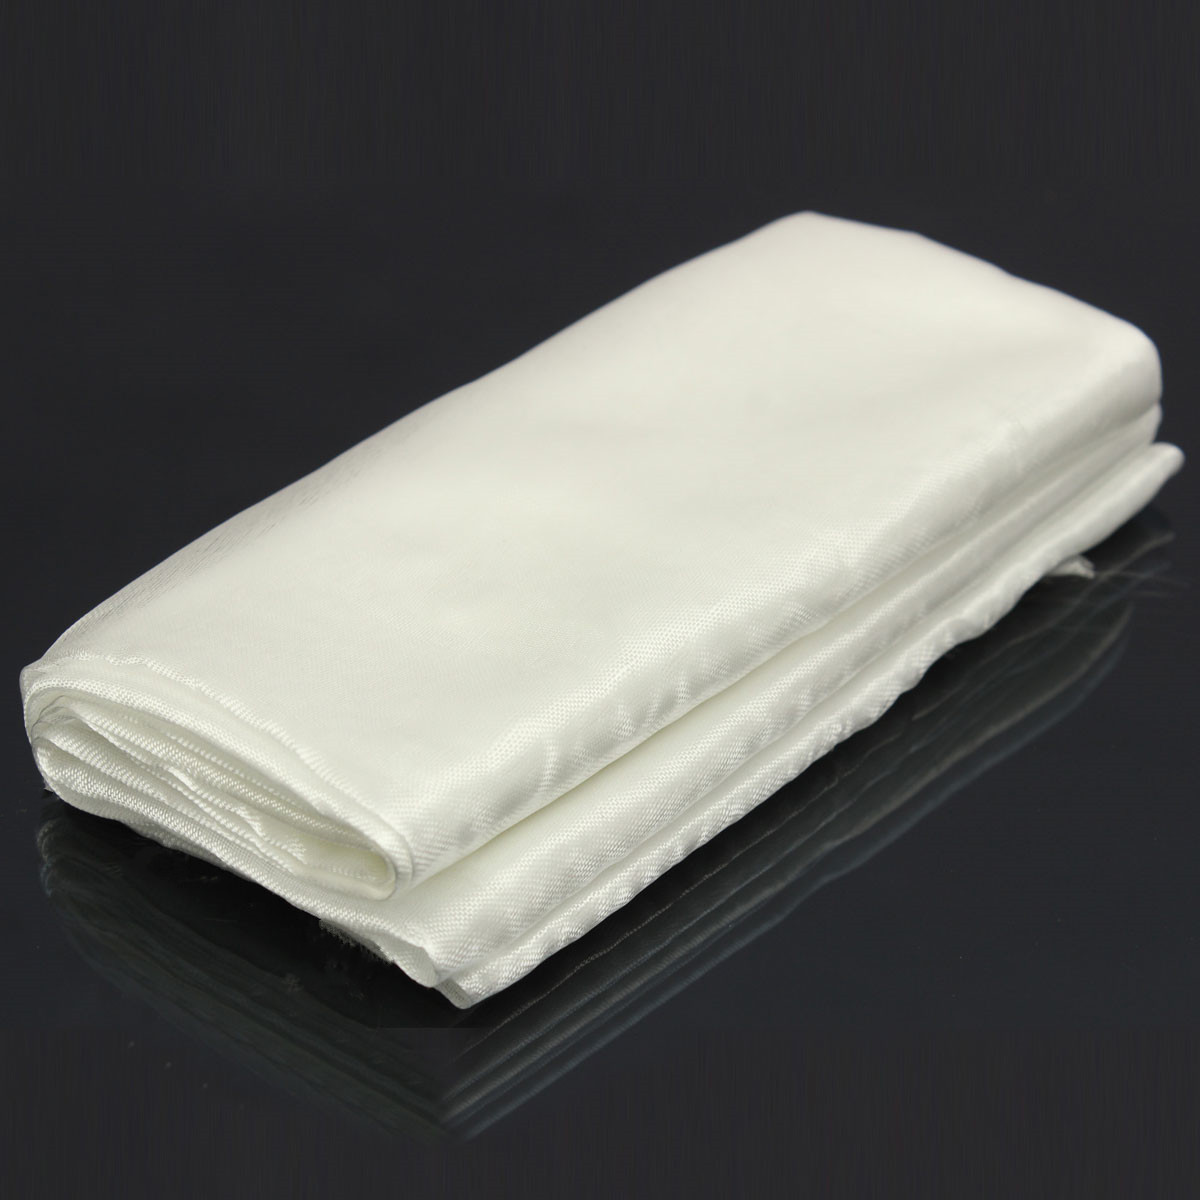 1 x 1.27m Thickness 0.03mm Ultra Thin Fiber Glass Fabric Reinforcements Fiberglass Fibreglass Cloth High temperature resistance трикси игрушка для кошки енот плюш 12 см